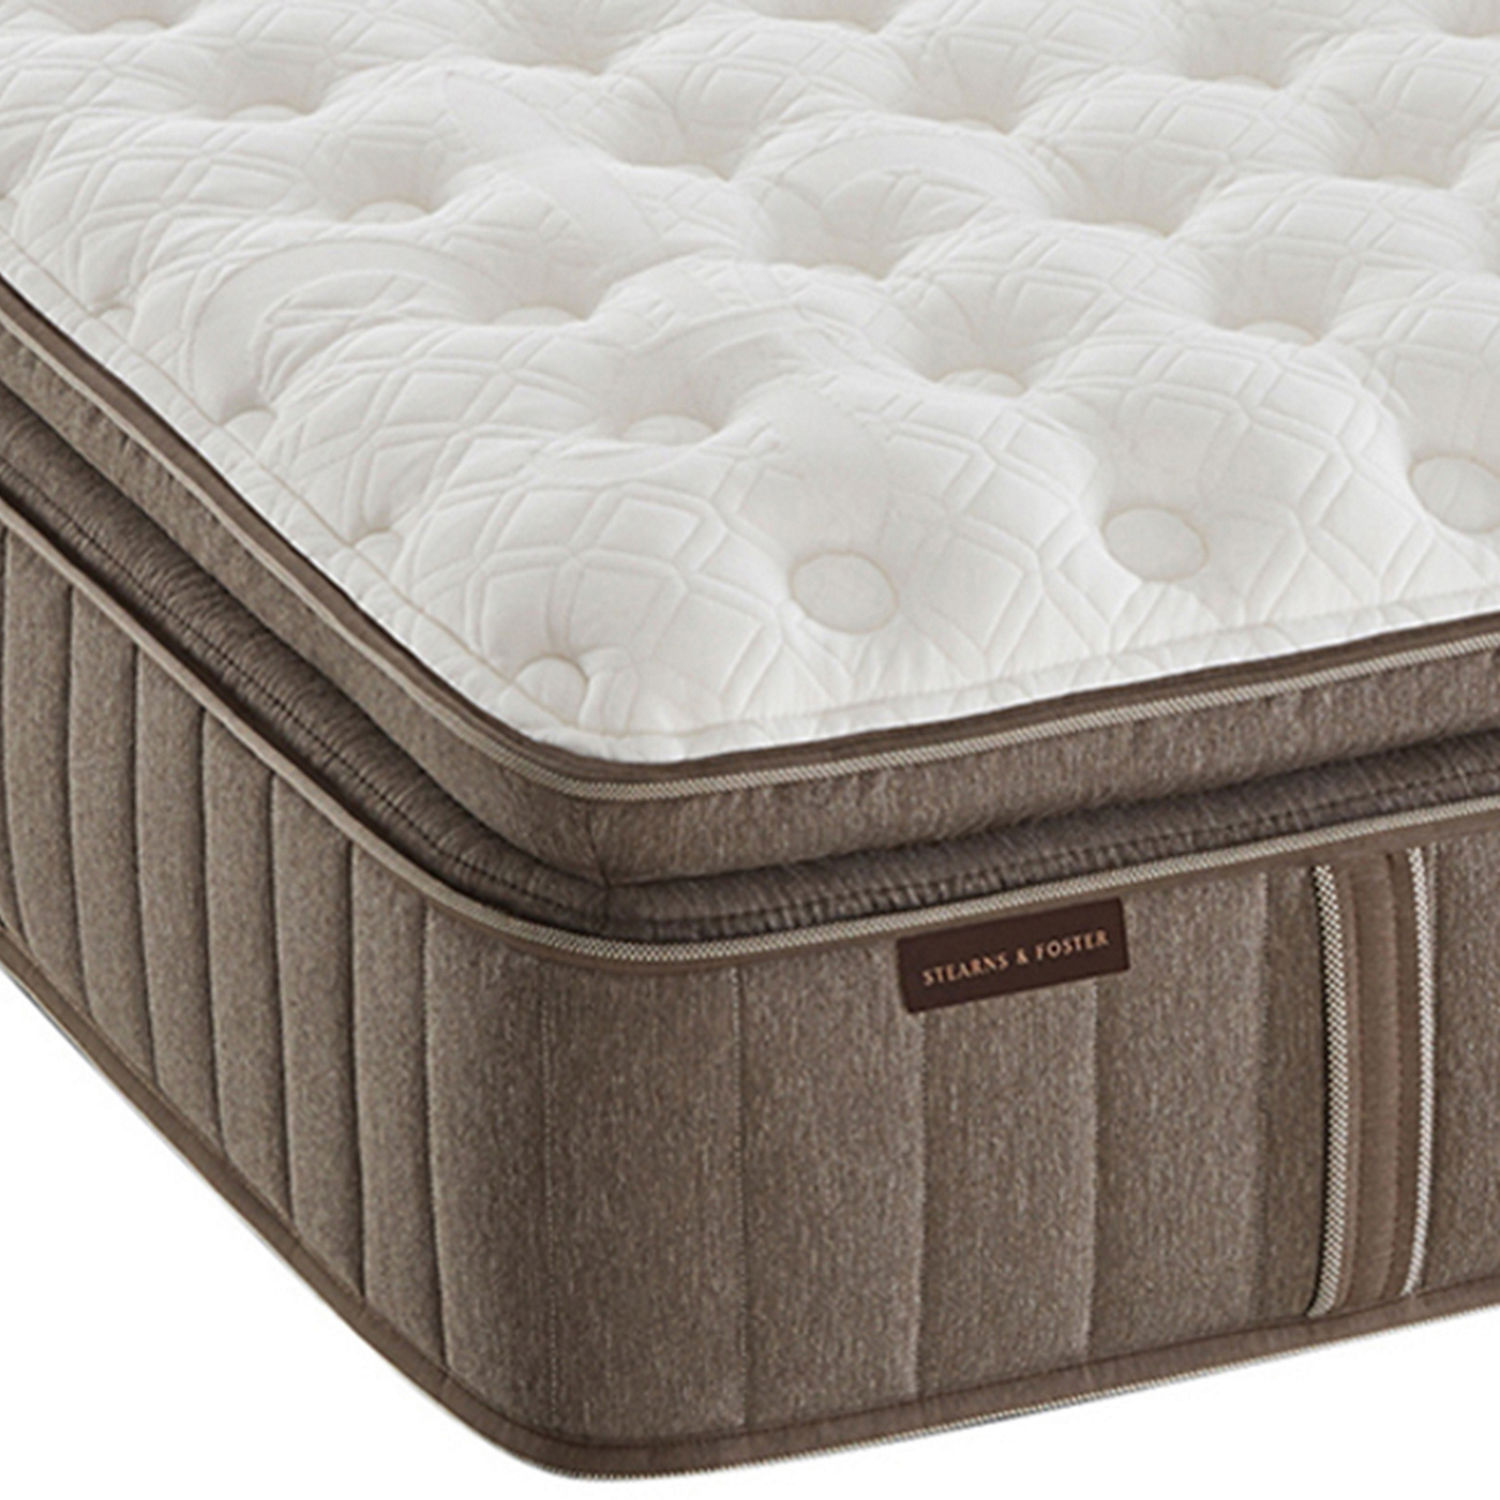 Stearns Foster Bed Reviews